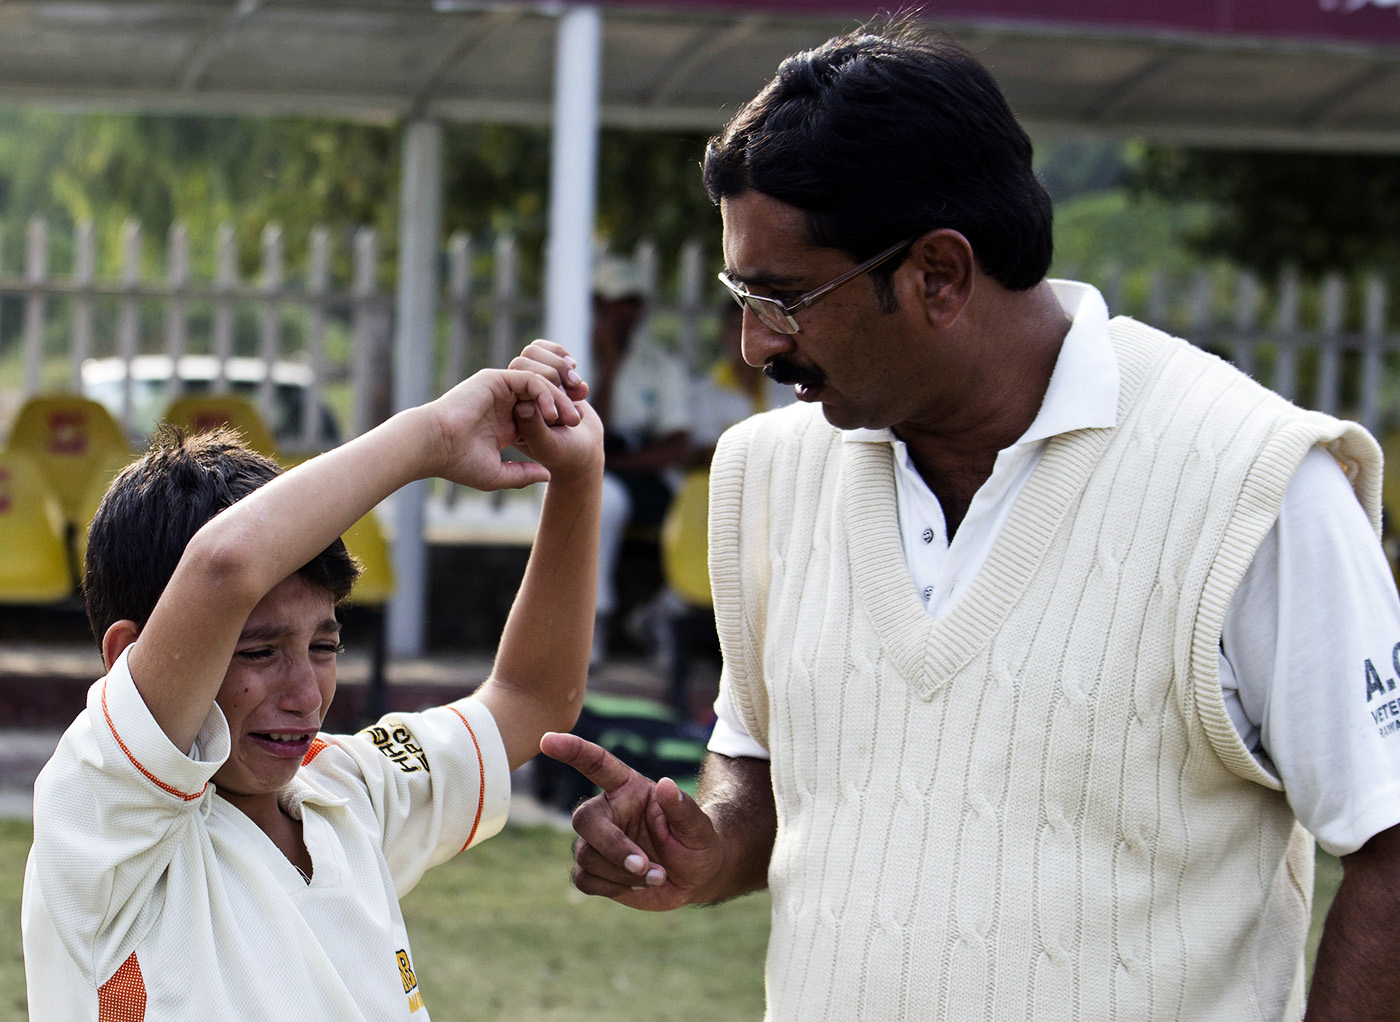 Asif Bajwa had a disciplinarian style of coaching but he was a key father figure in Amir's life